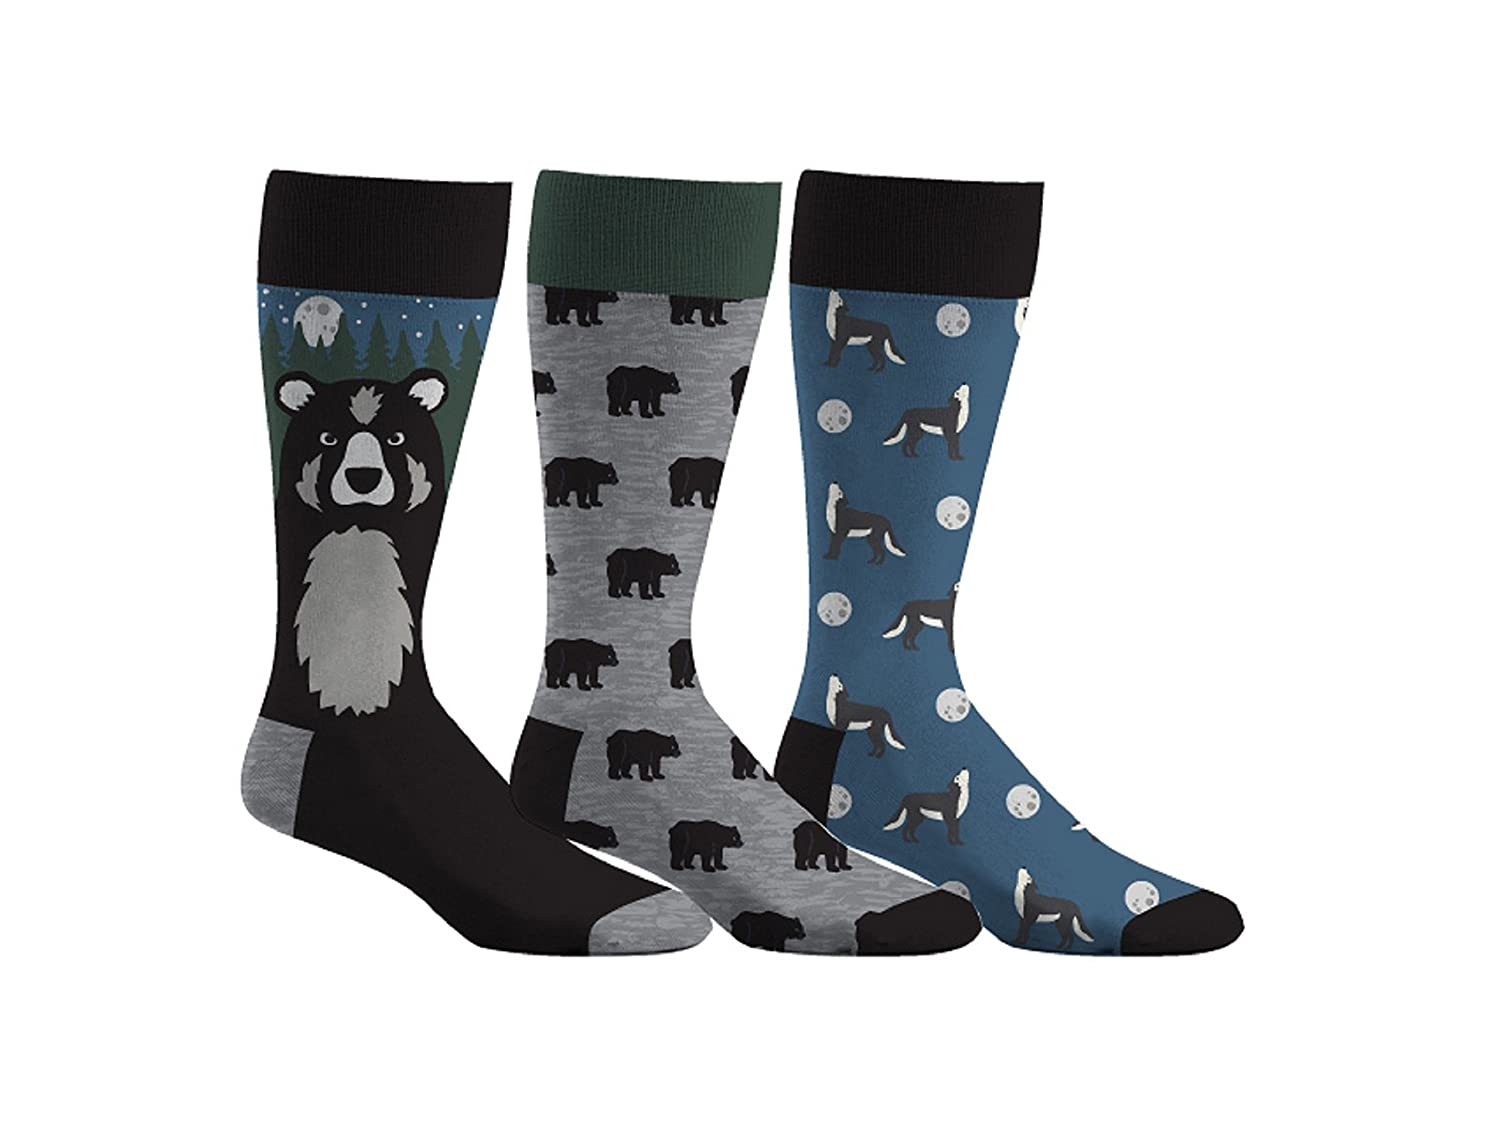 Densley & Co Men's Fun Dress Socks 3-Pack Academy